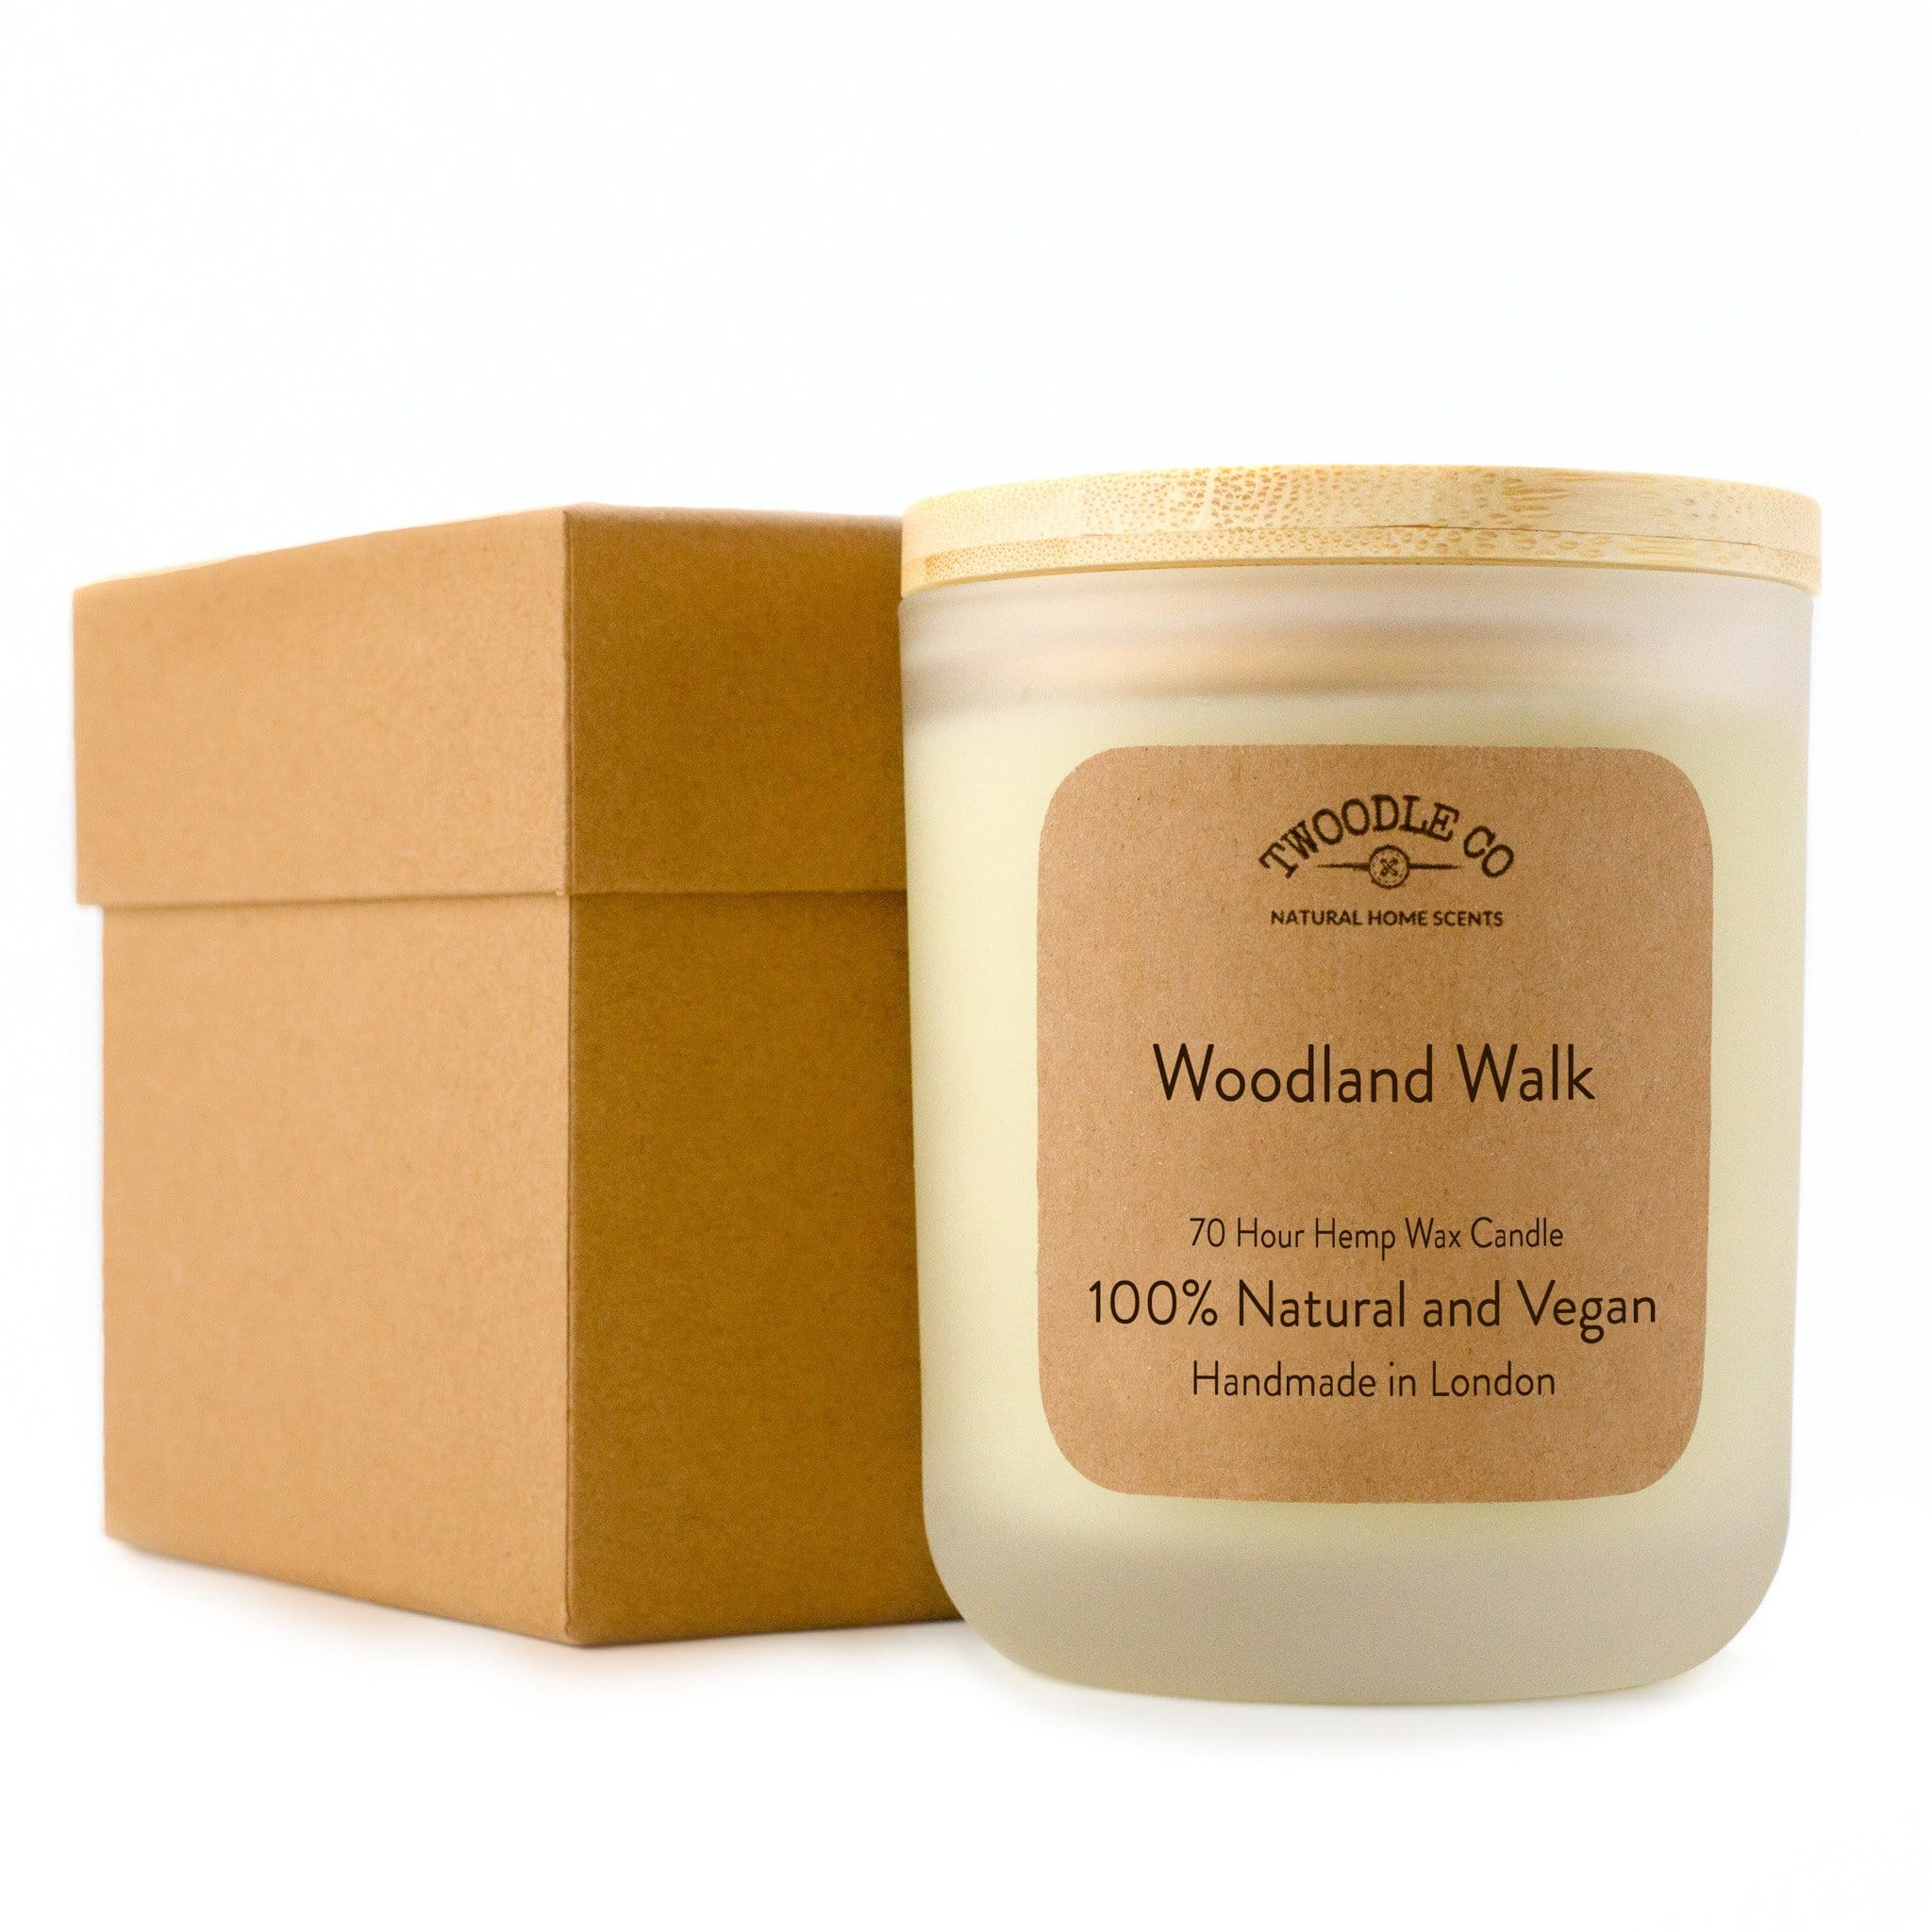 Woodland Walk Large Scented Candle 70 Hour